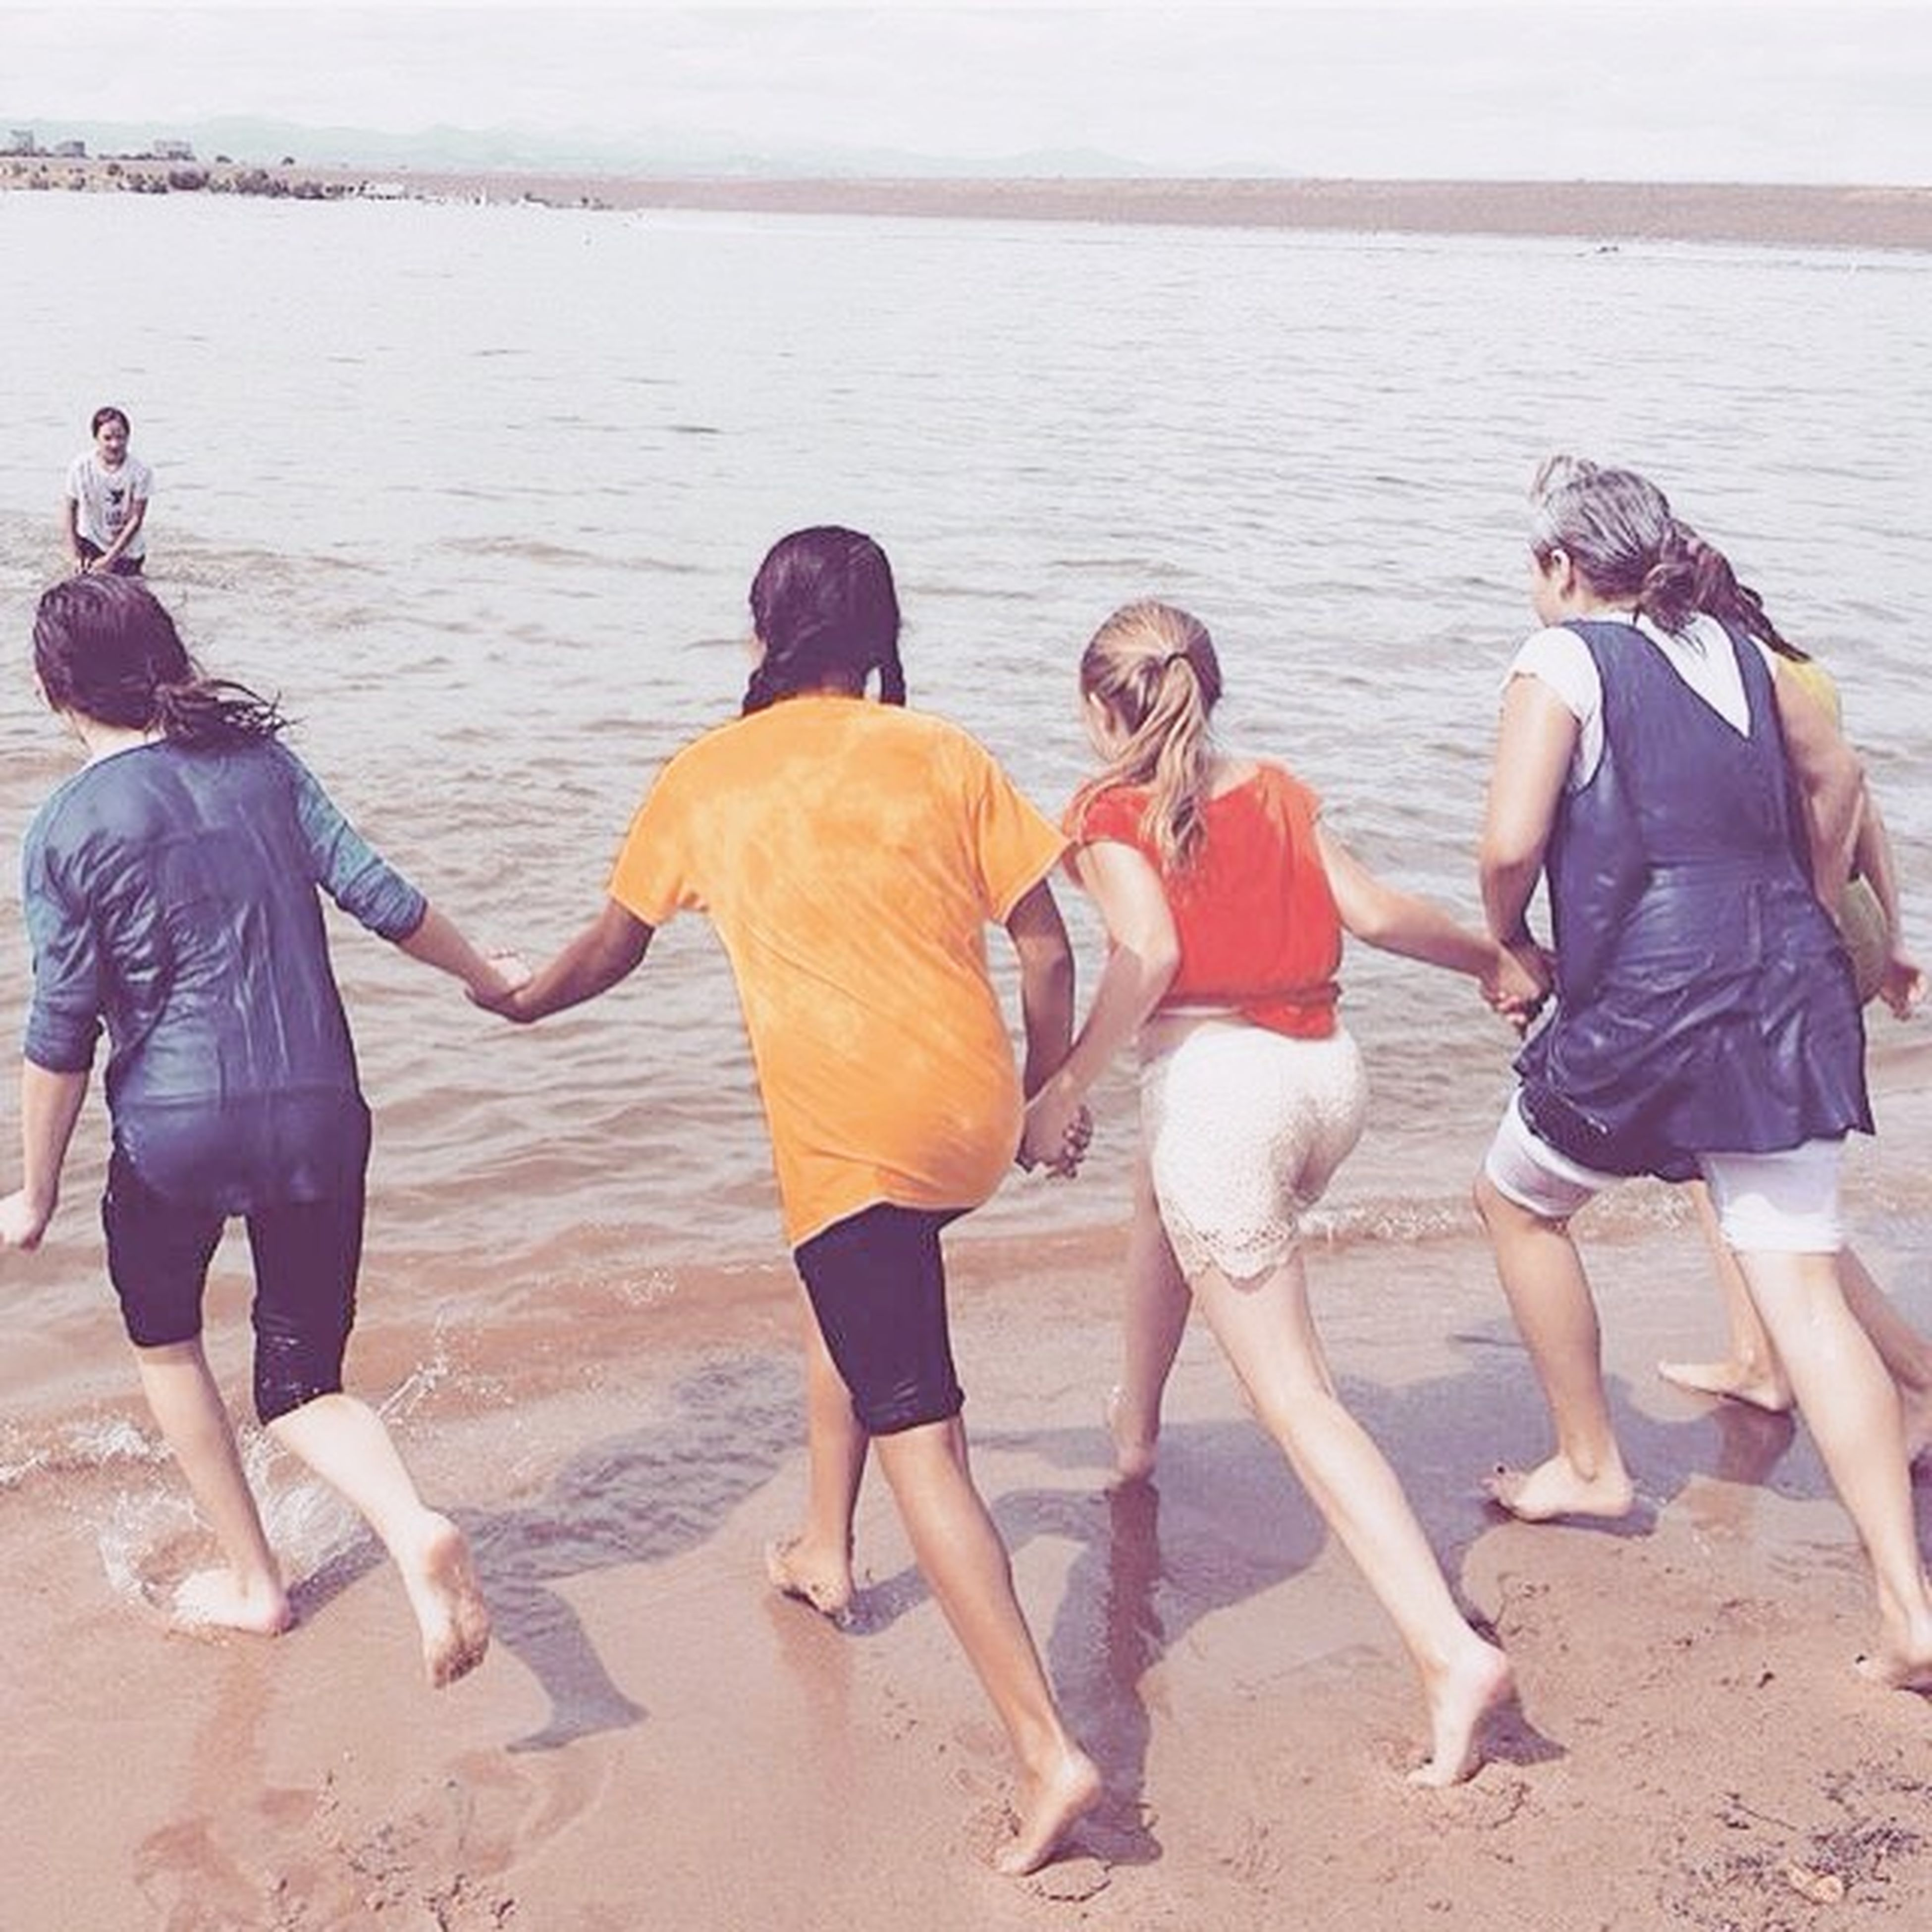 water, togetherness, lifestyles, sea, leisure activity, beach, bonding, vacations, shore, men, friendship, love, sand, casual clothing, full length, person, large group of people, enjoyment